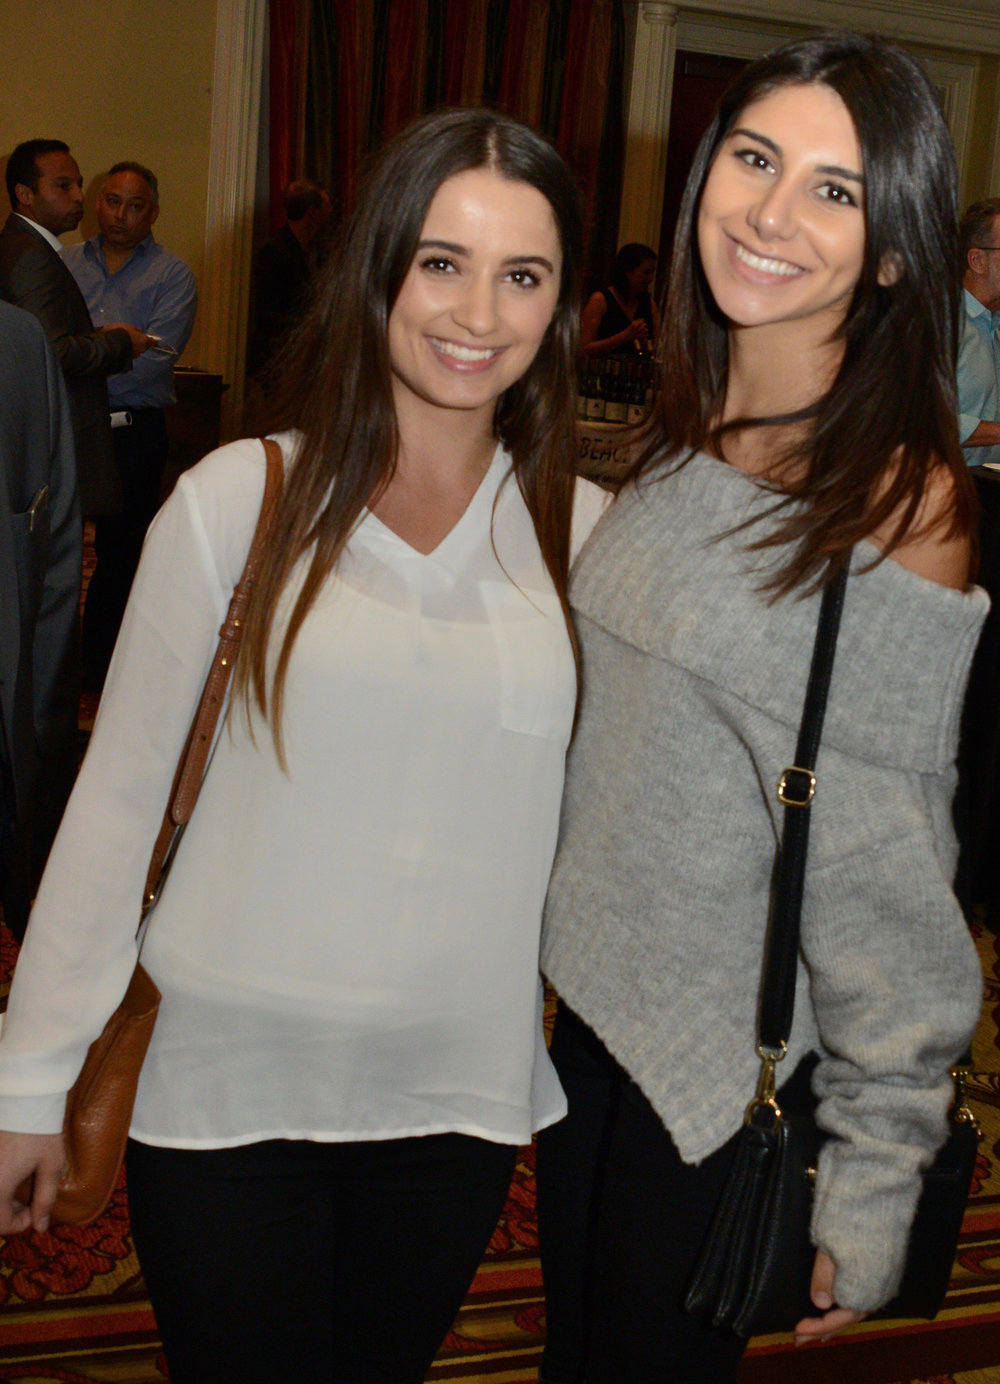 Michelle Dimov and Sahar Amini